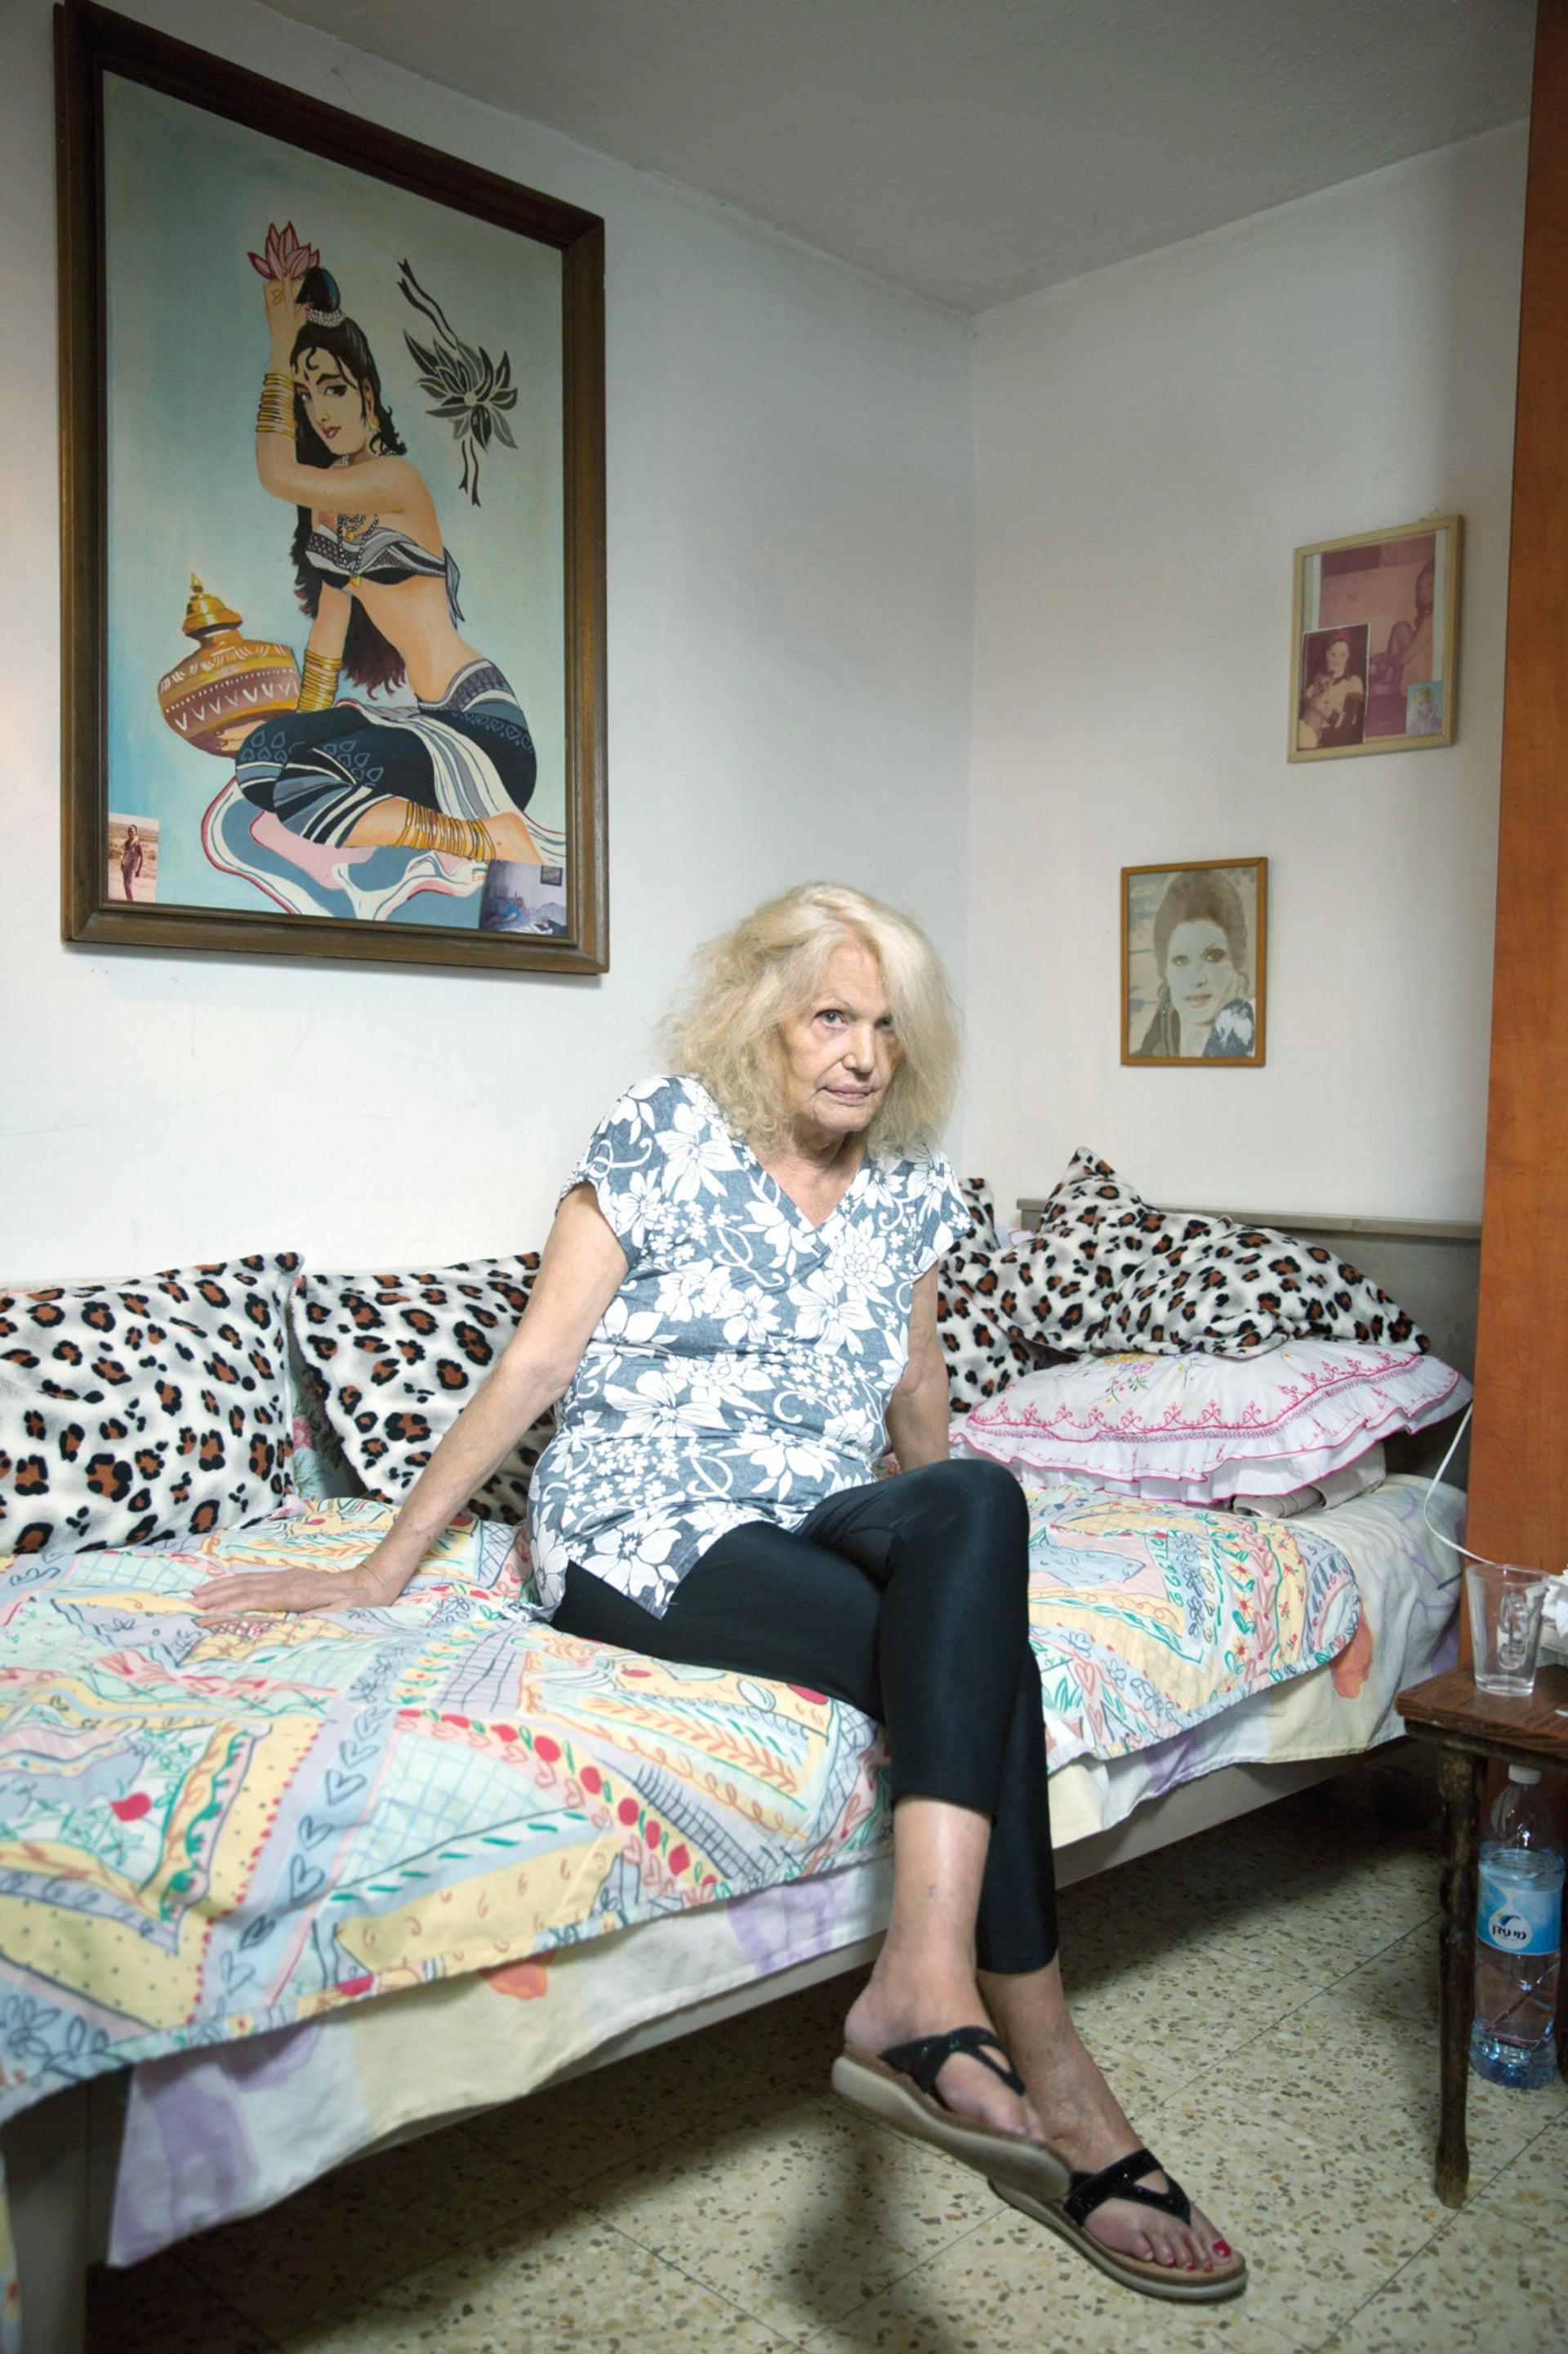 Nadia Avraham at home at Tel Aviv's Hatikvah neighborhood.